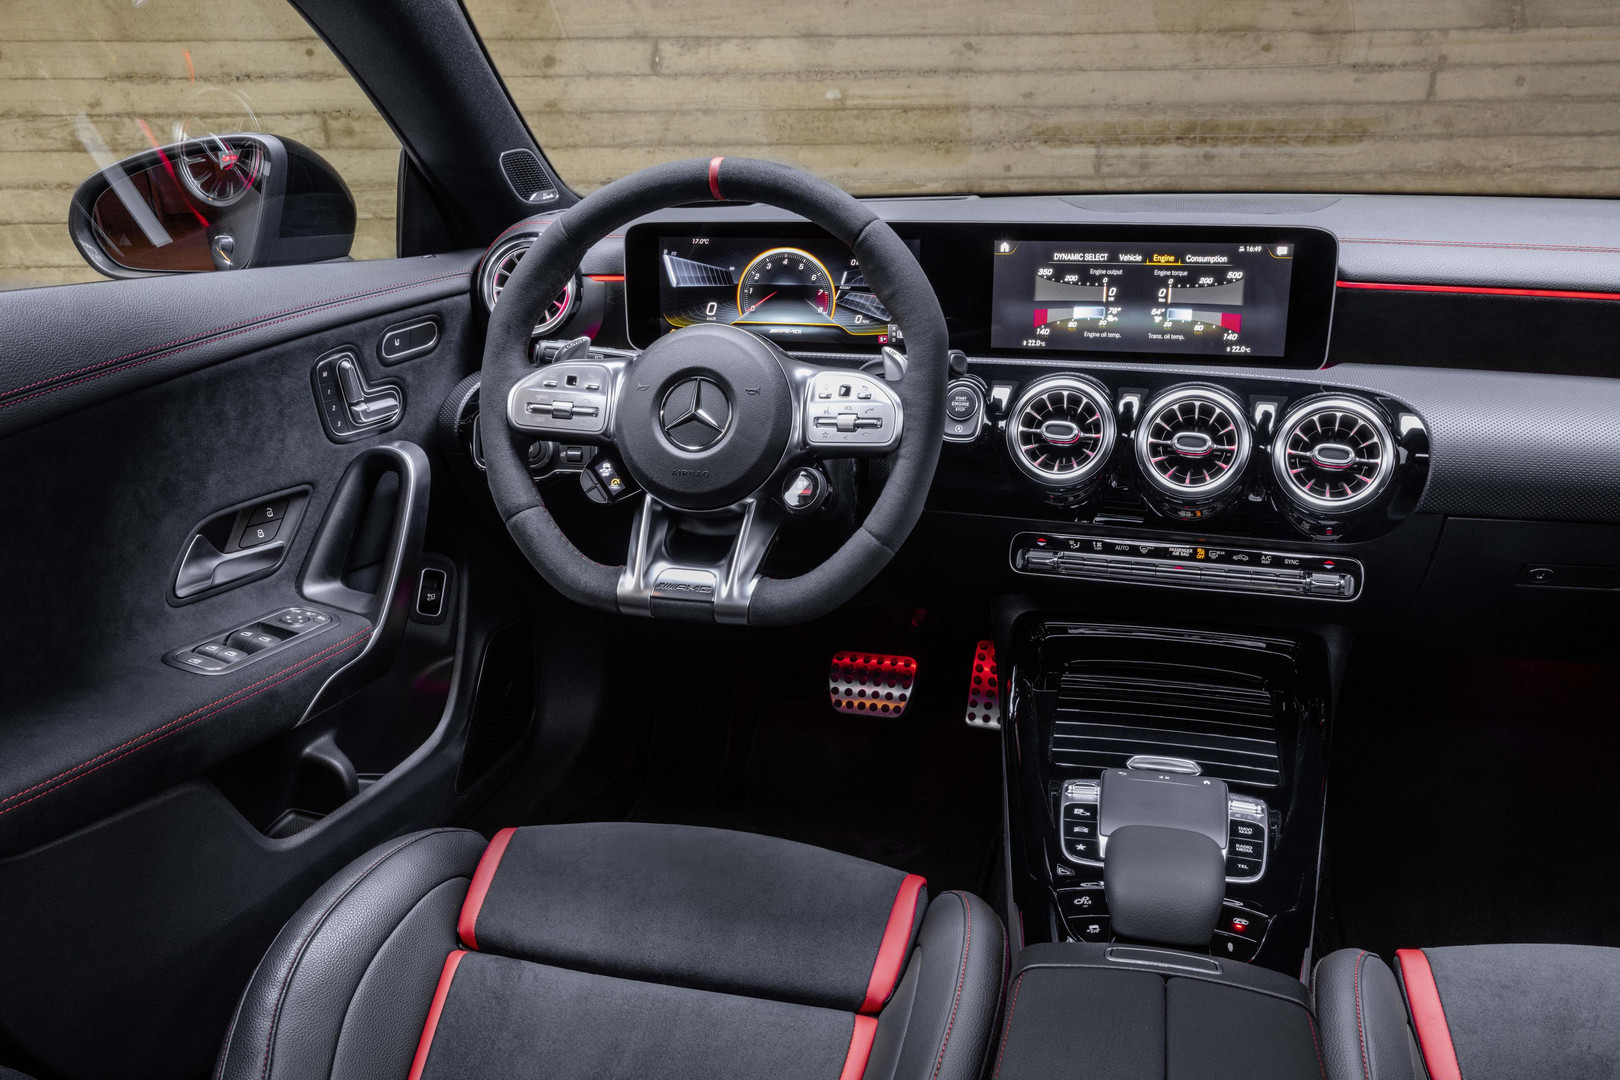 Mercedes-AMG CLA 45 S Shooting Brake Interior